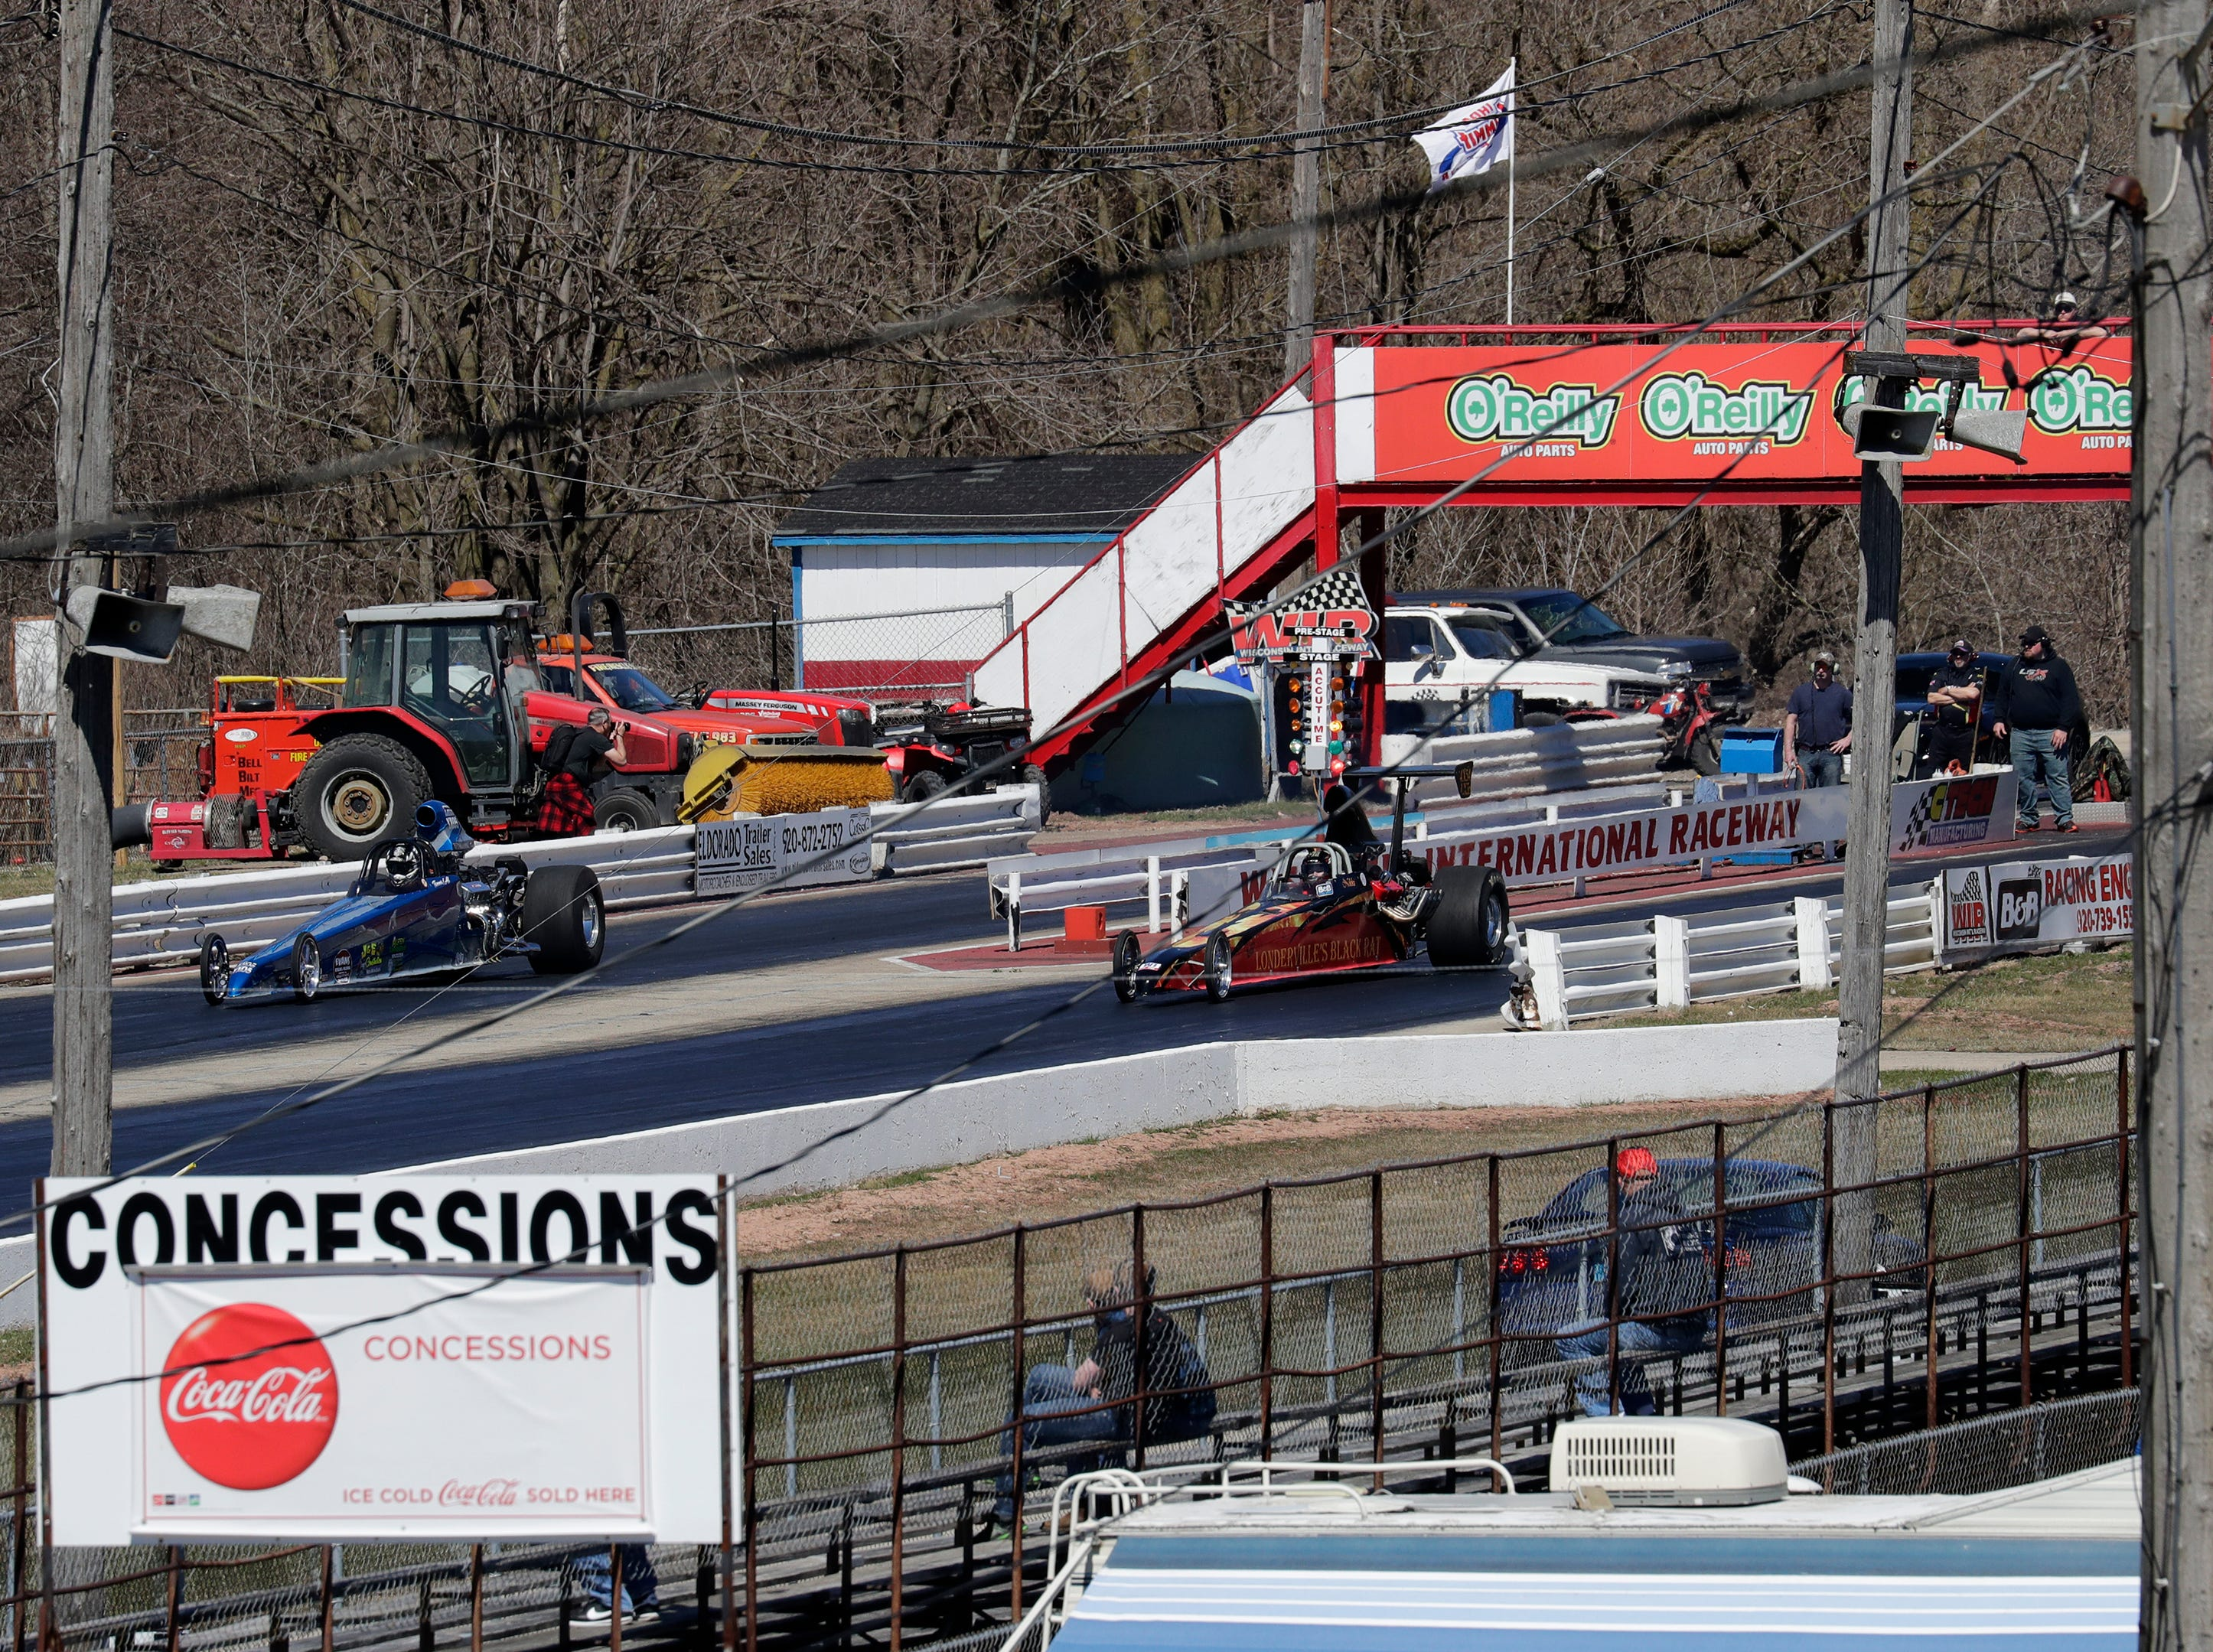 Dragsters take test runs during the Wisconsin International Raceway Strip Test & Tune event Saturday, April 20, 2019, in Kaukauna, Wis. Drivers spent the day getting safety inspections, tune ups and test runs on the track for the upcoming season.